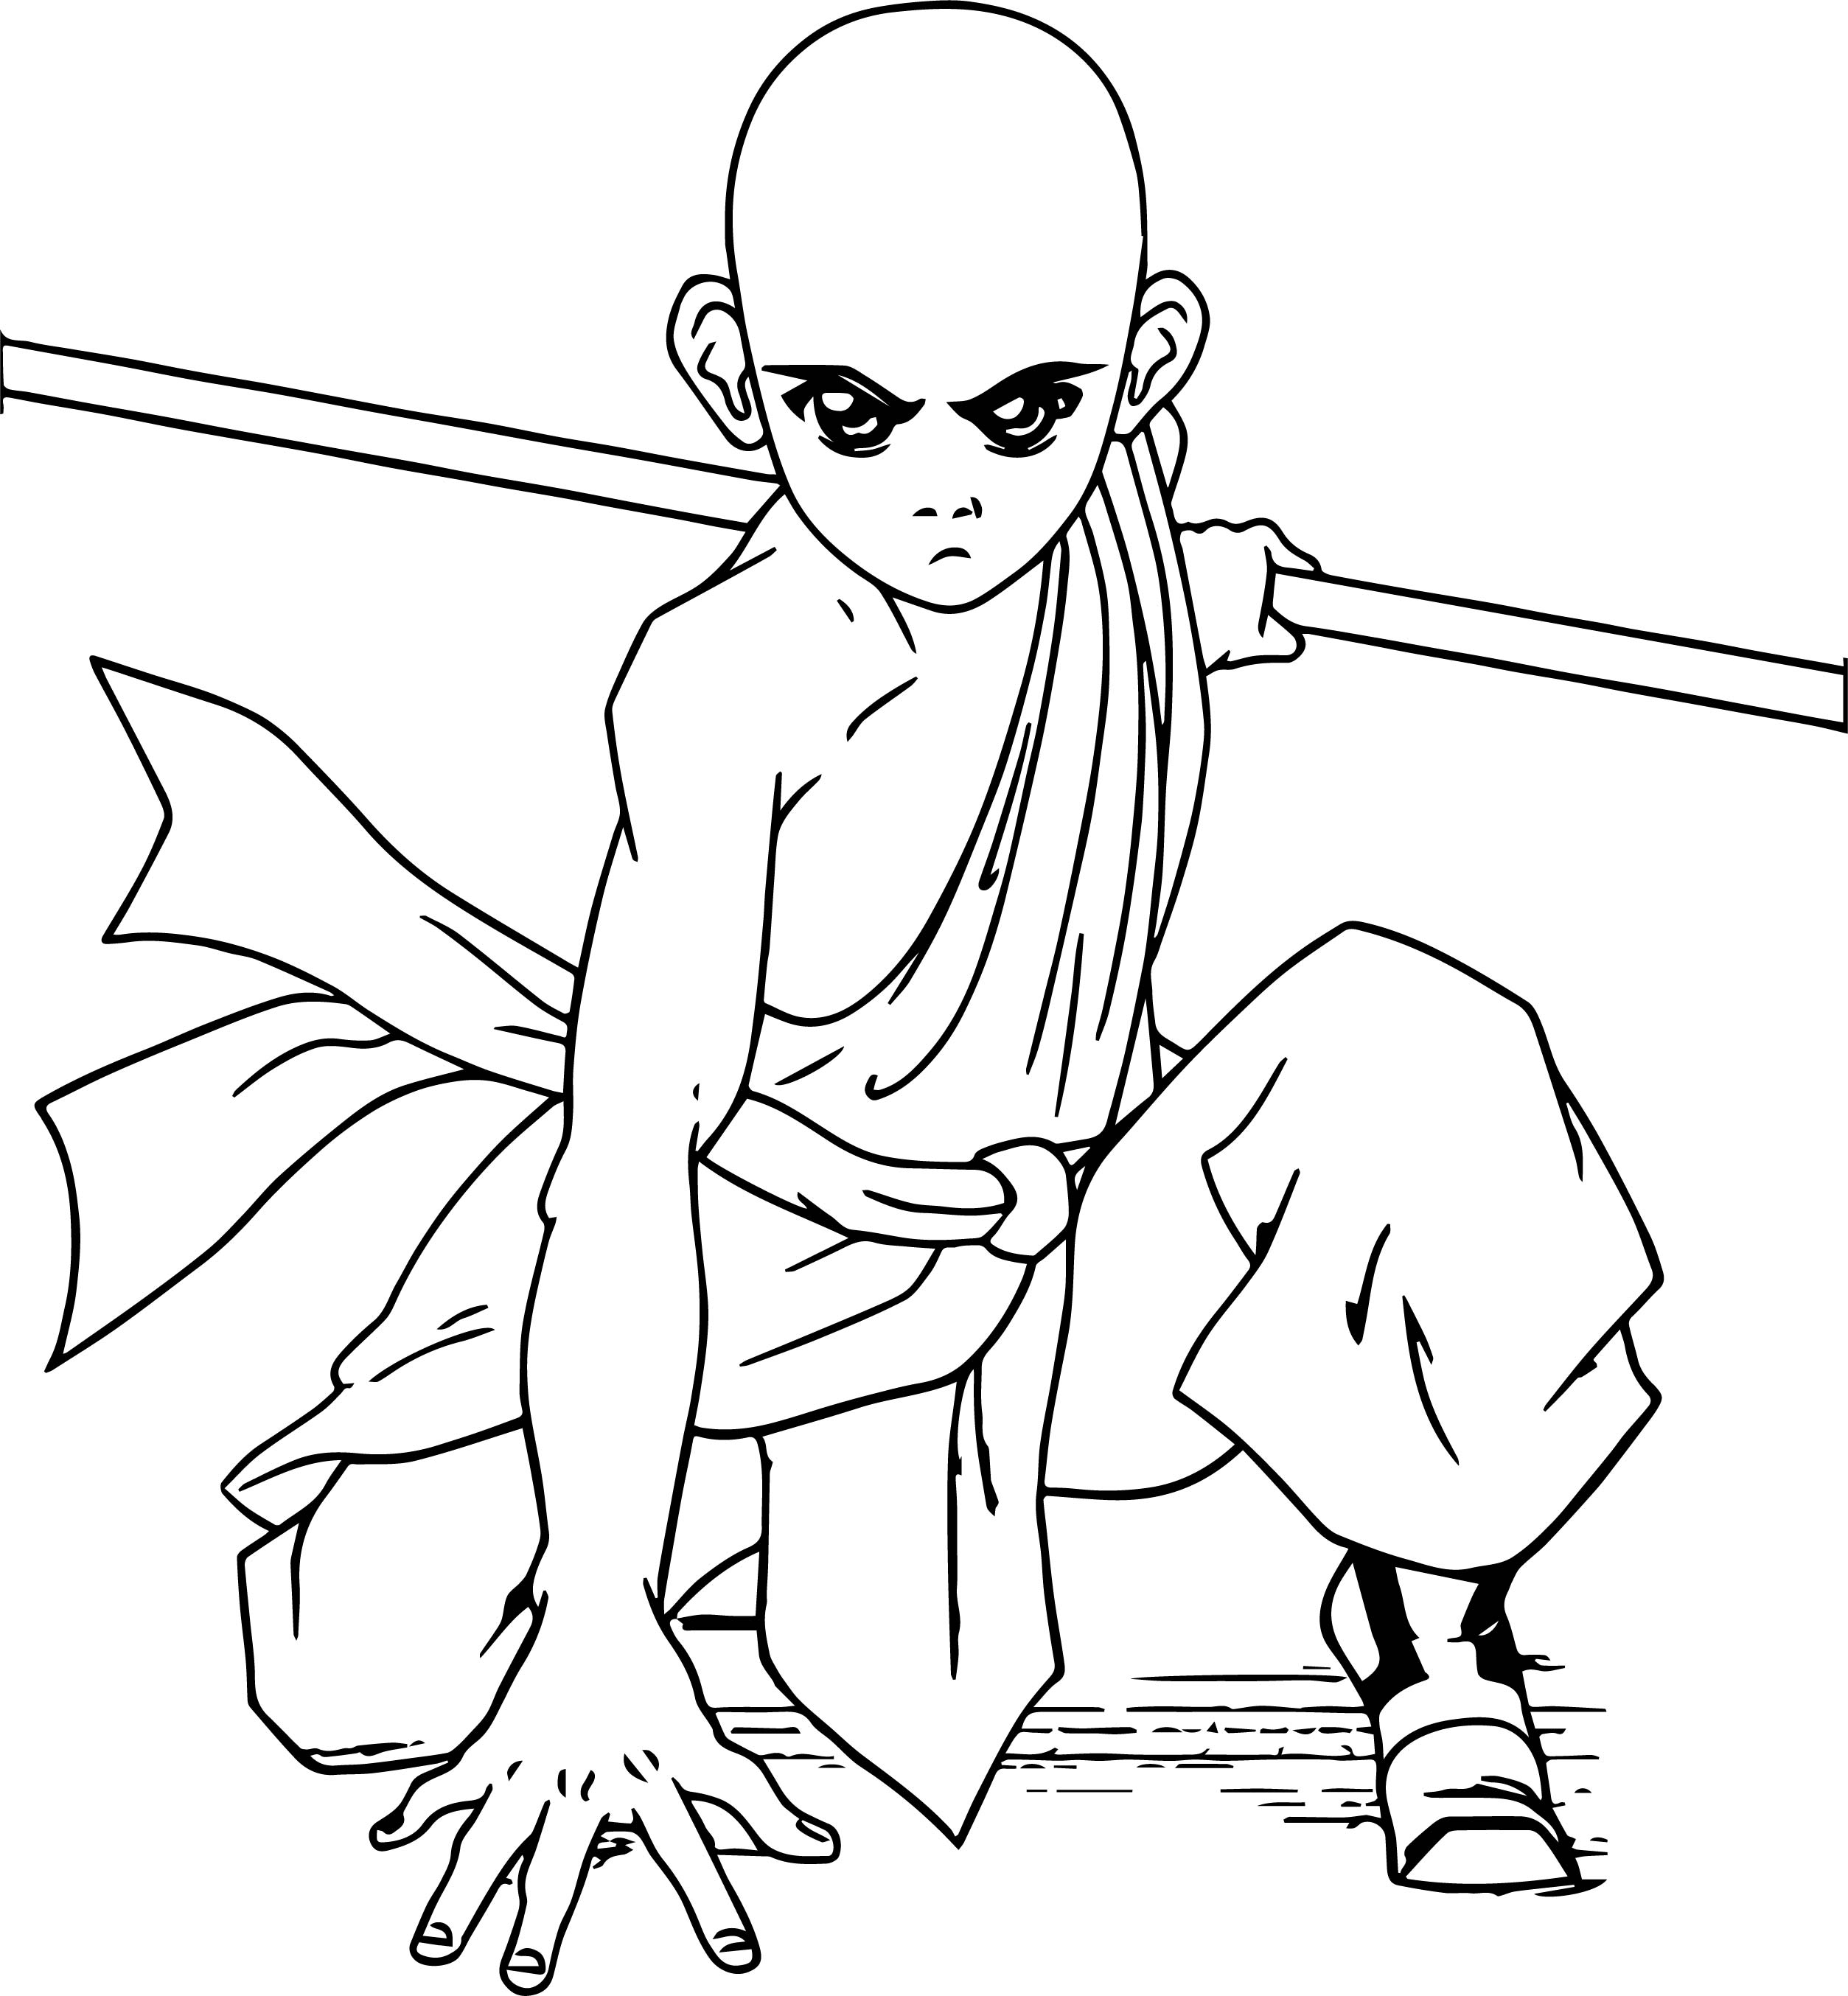 Aang In Action Viress Avatar Aang Coloring Page